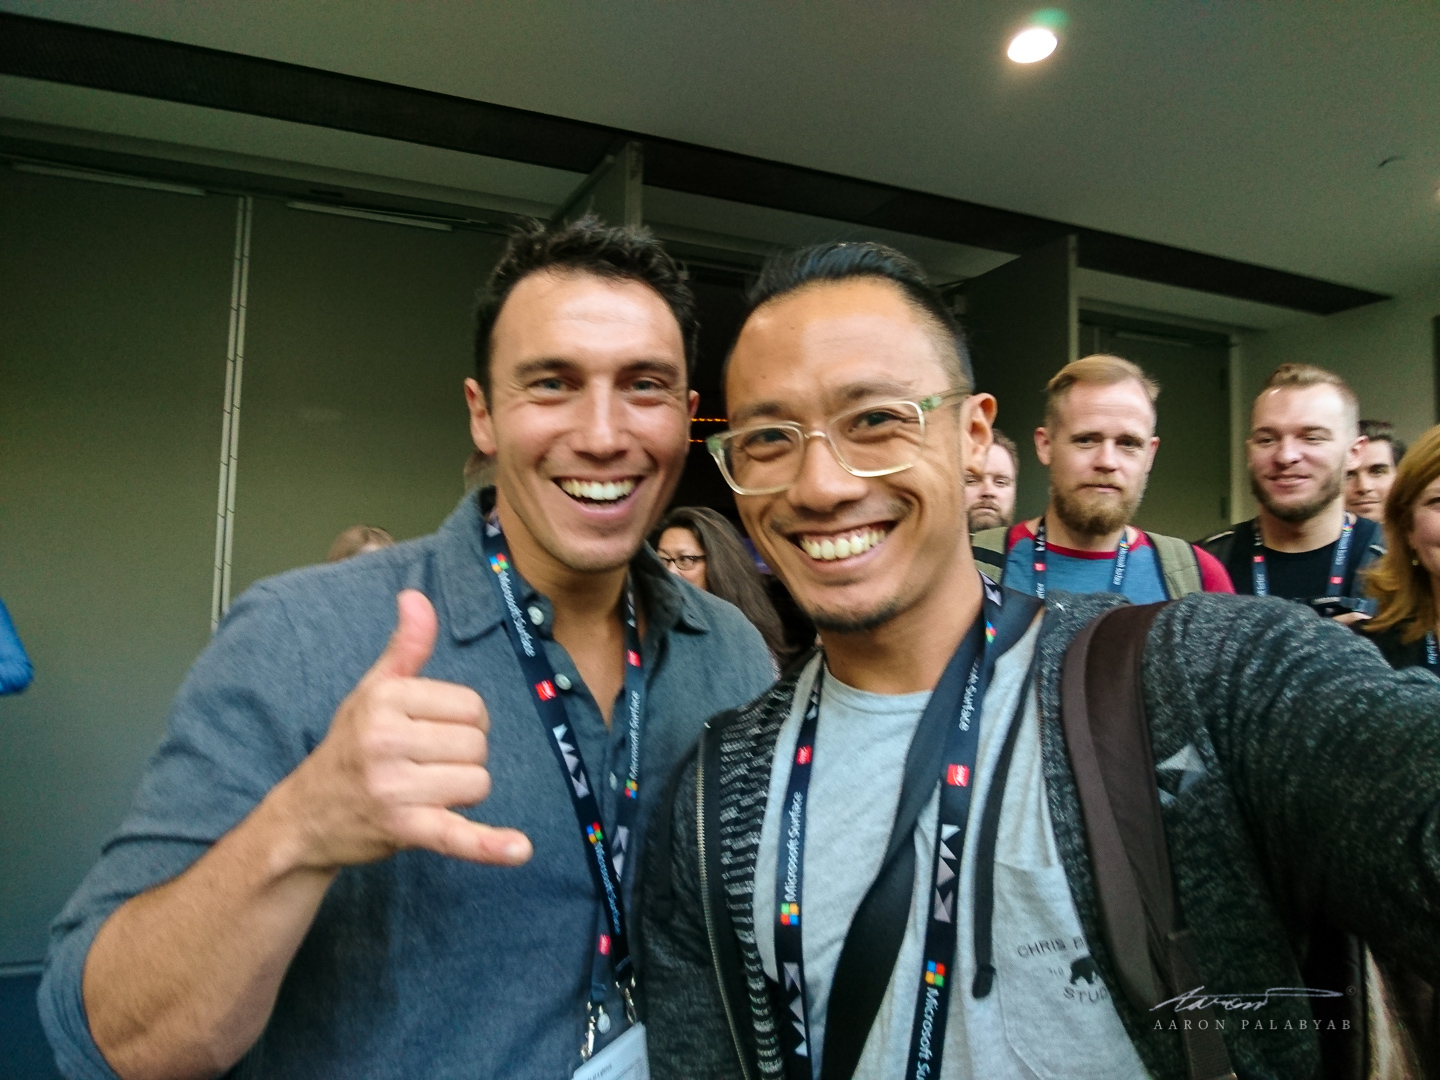 Post-session selfie with Chris Burkard at Adobe MAX 2016 (note the fanboy t-shirt)